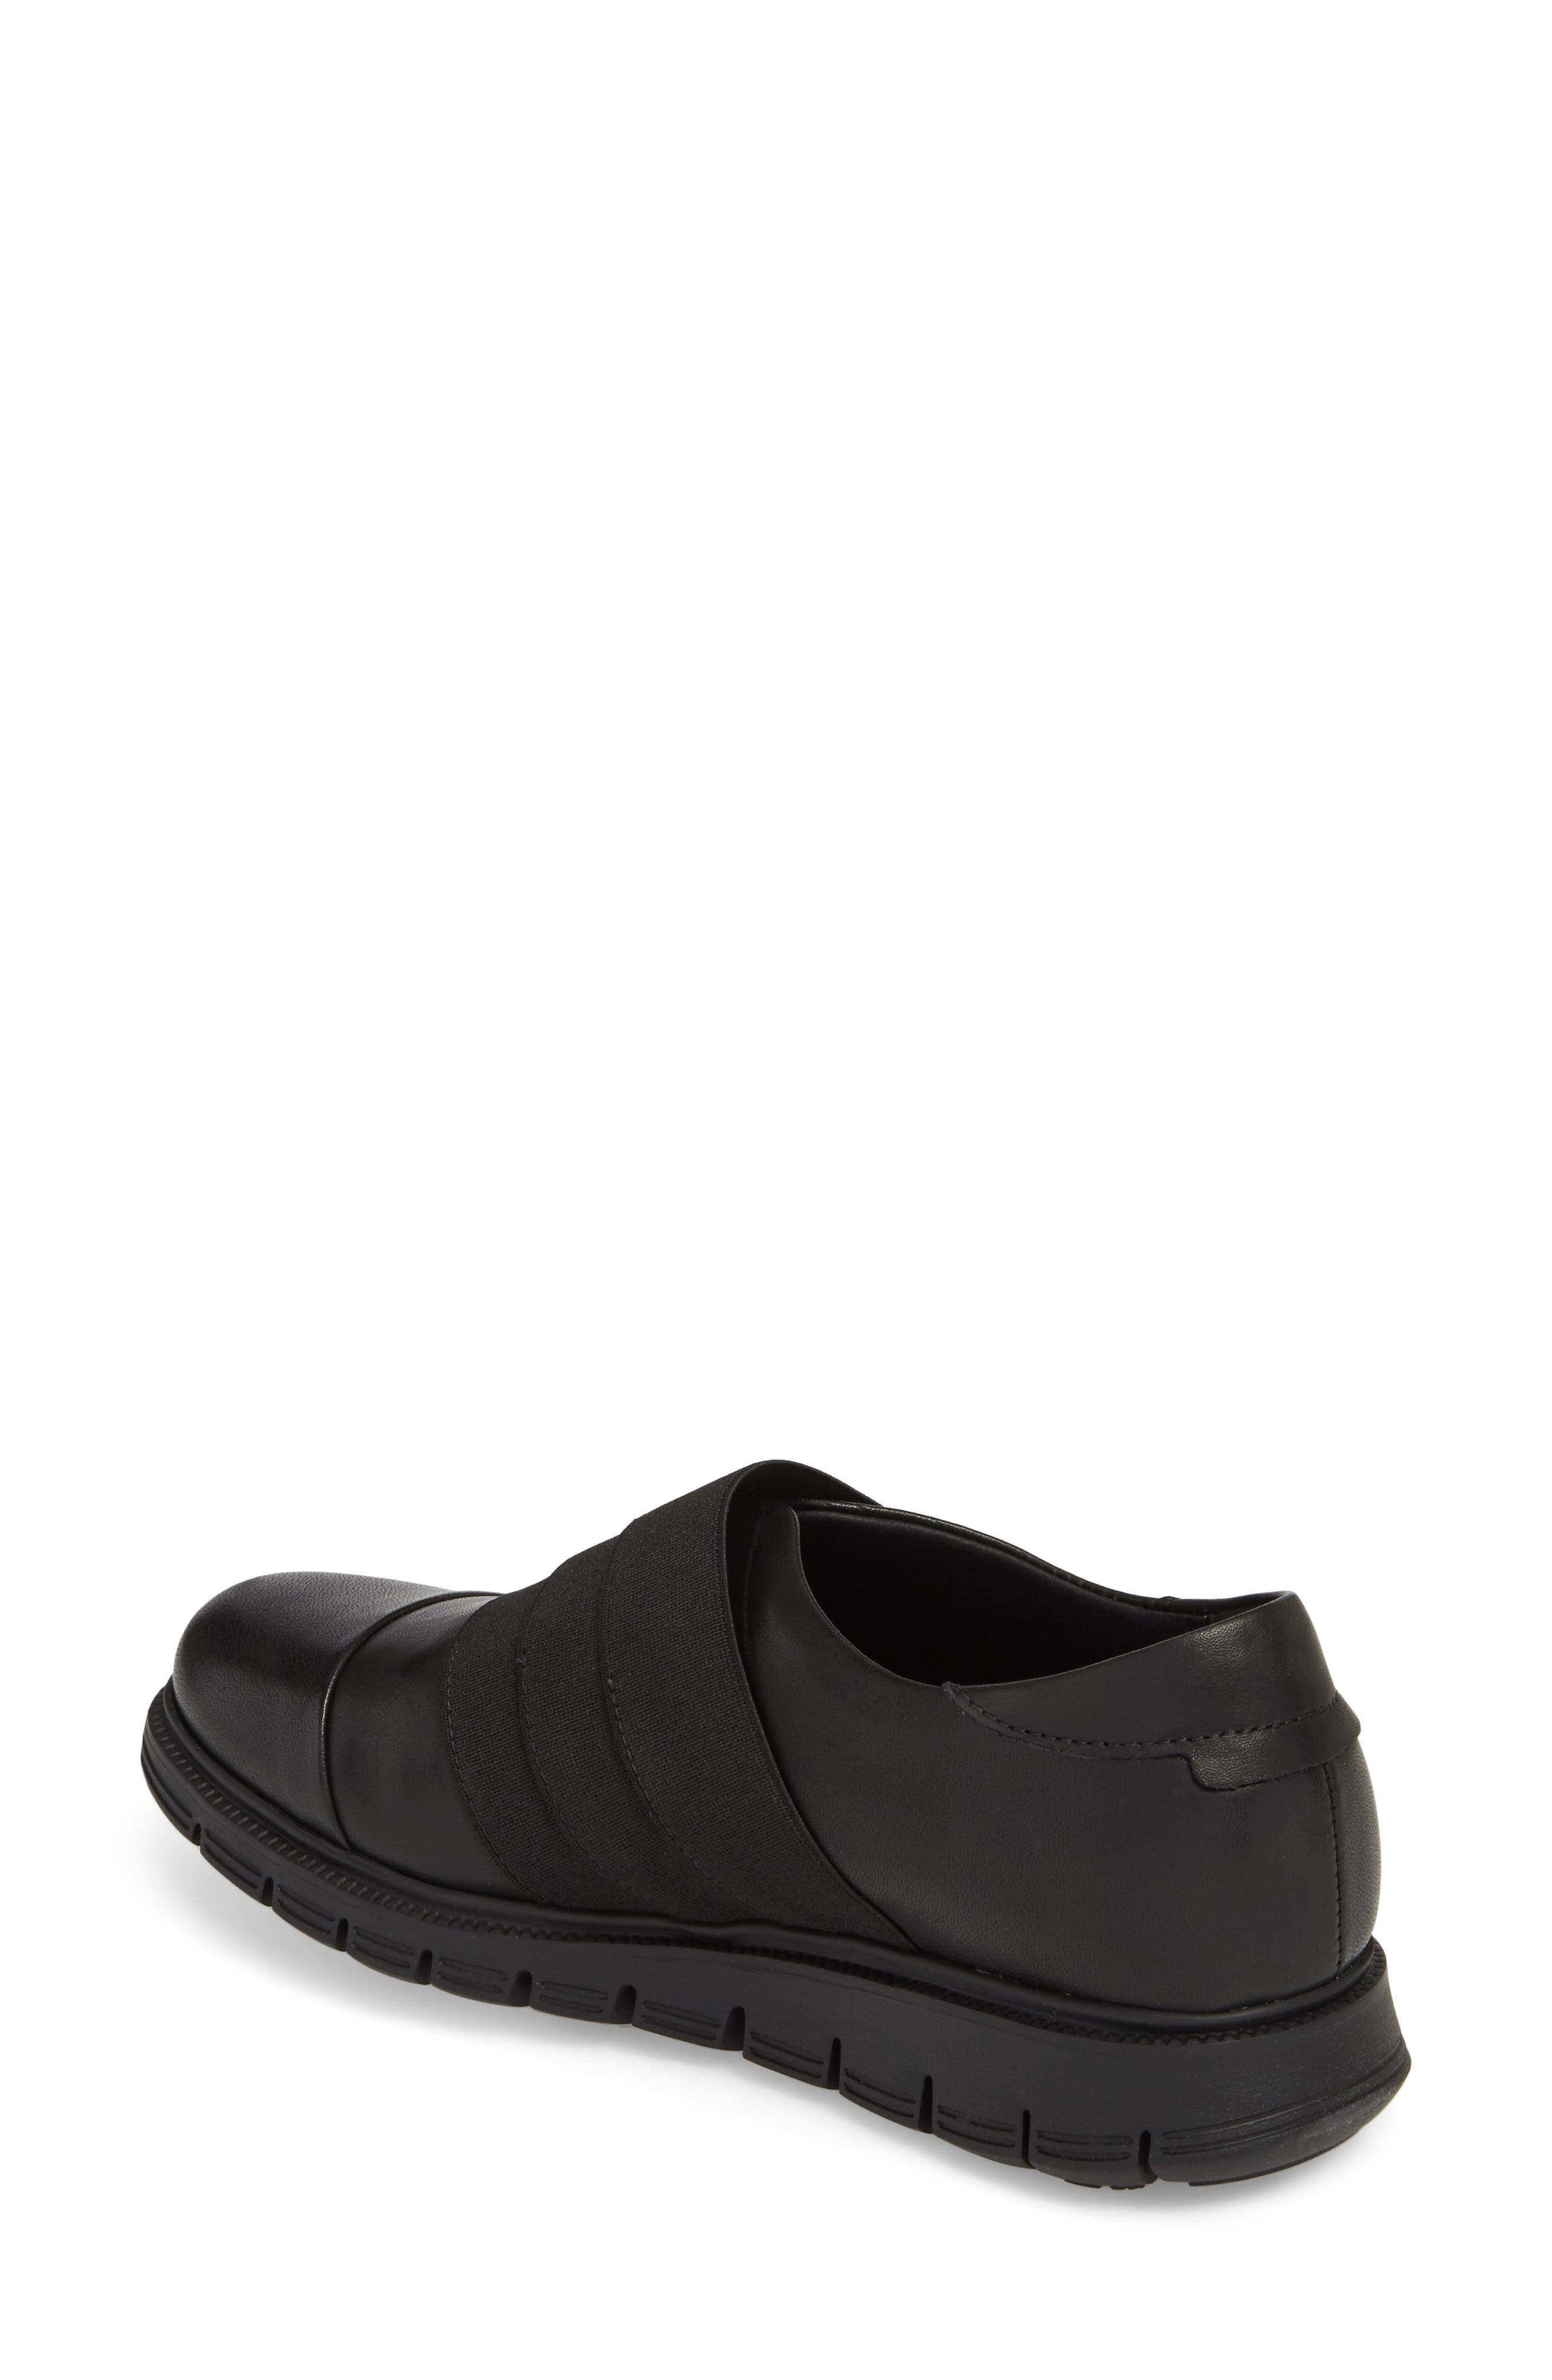 Grace Slip-On Sneaker,                             Alternate thumbnail 2, color,                             Black Leather